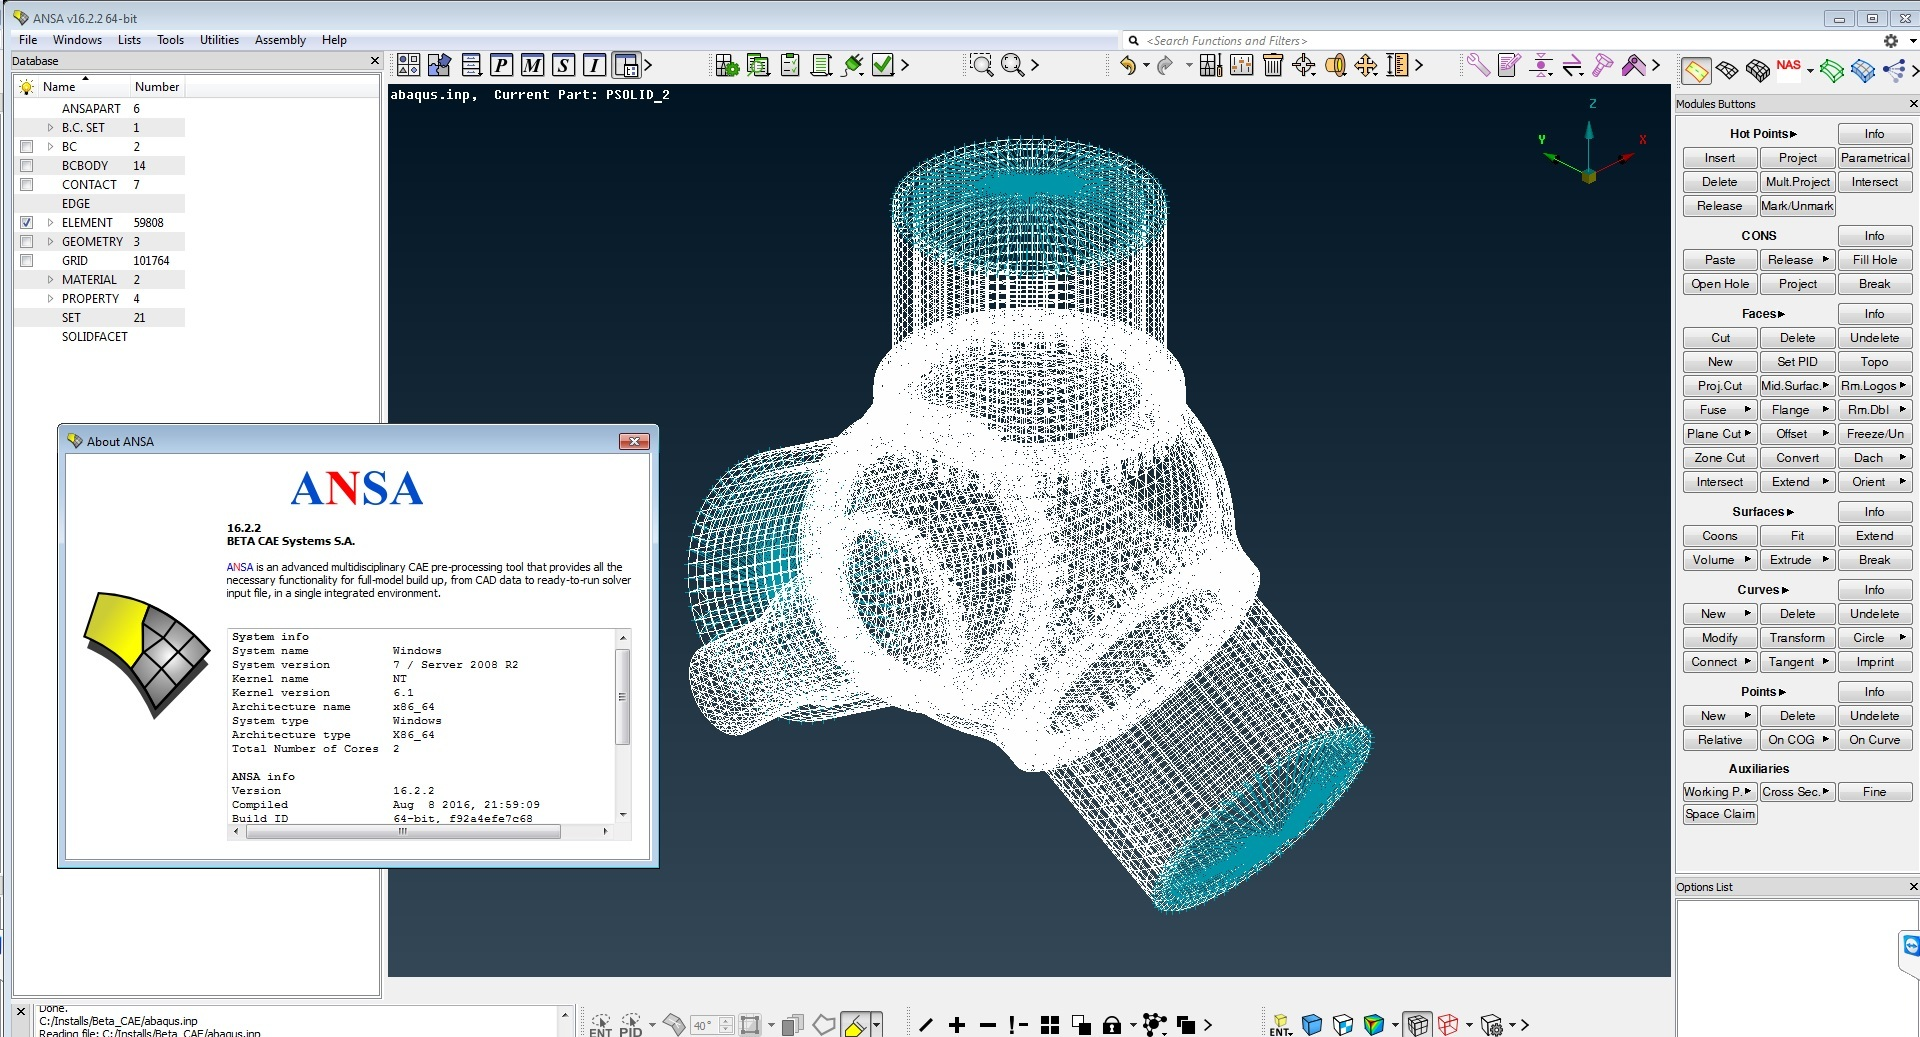 download BETA CAE Systems v16.2.2 x64 full license working forever